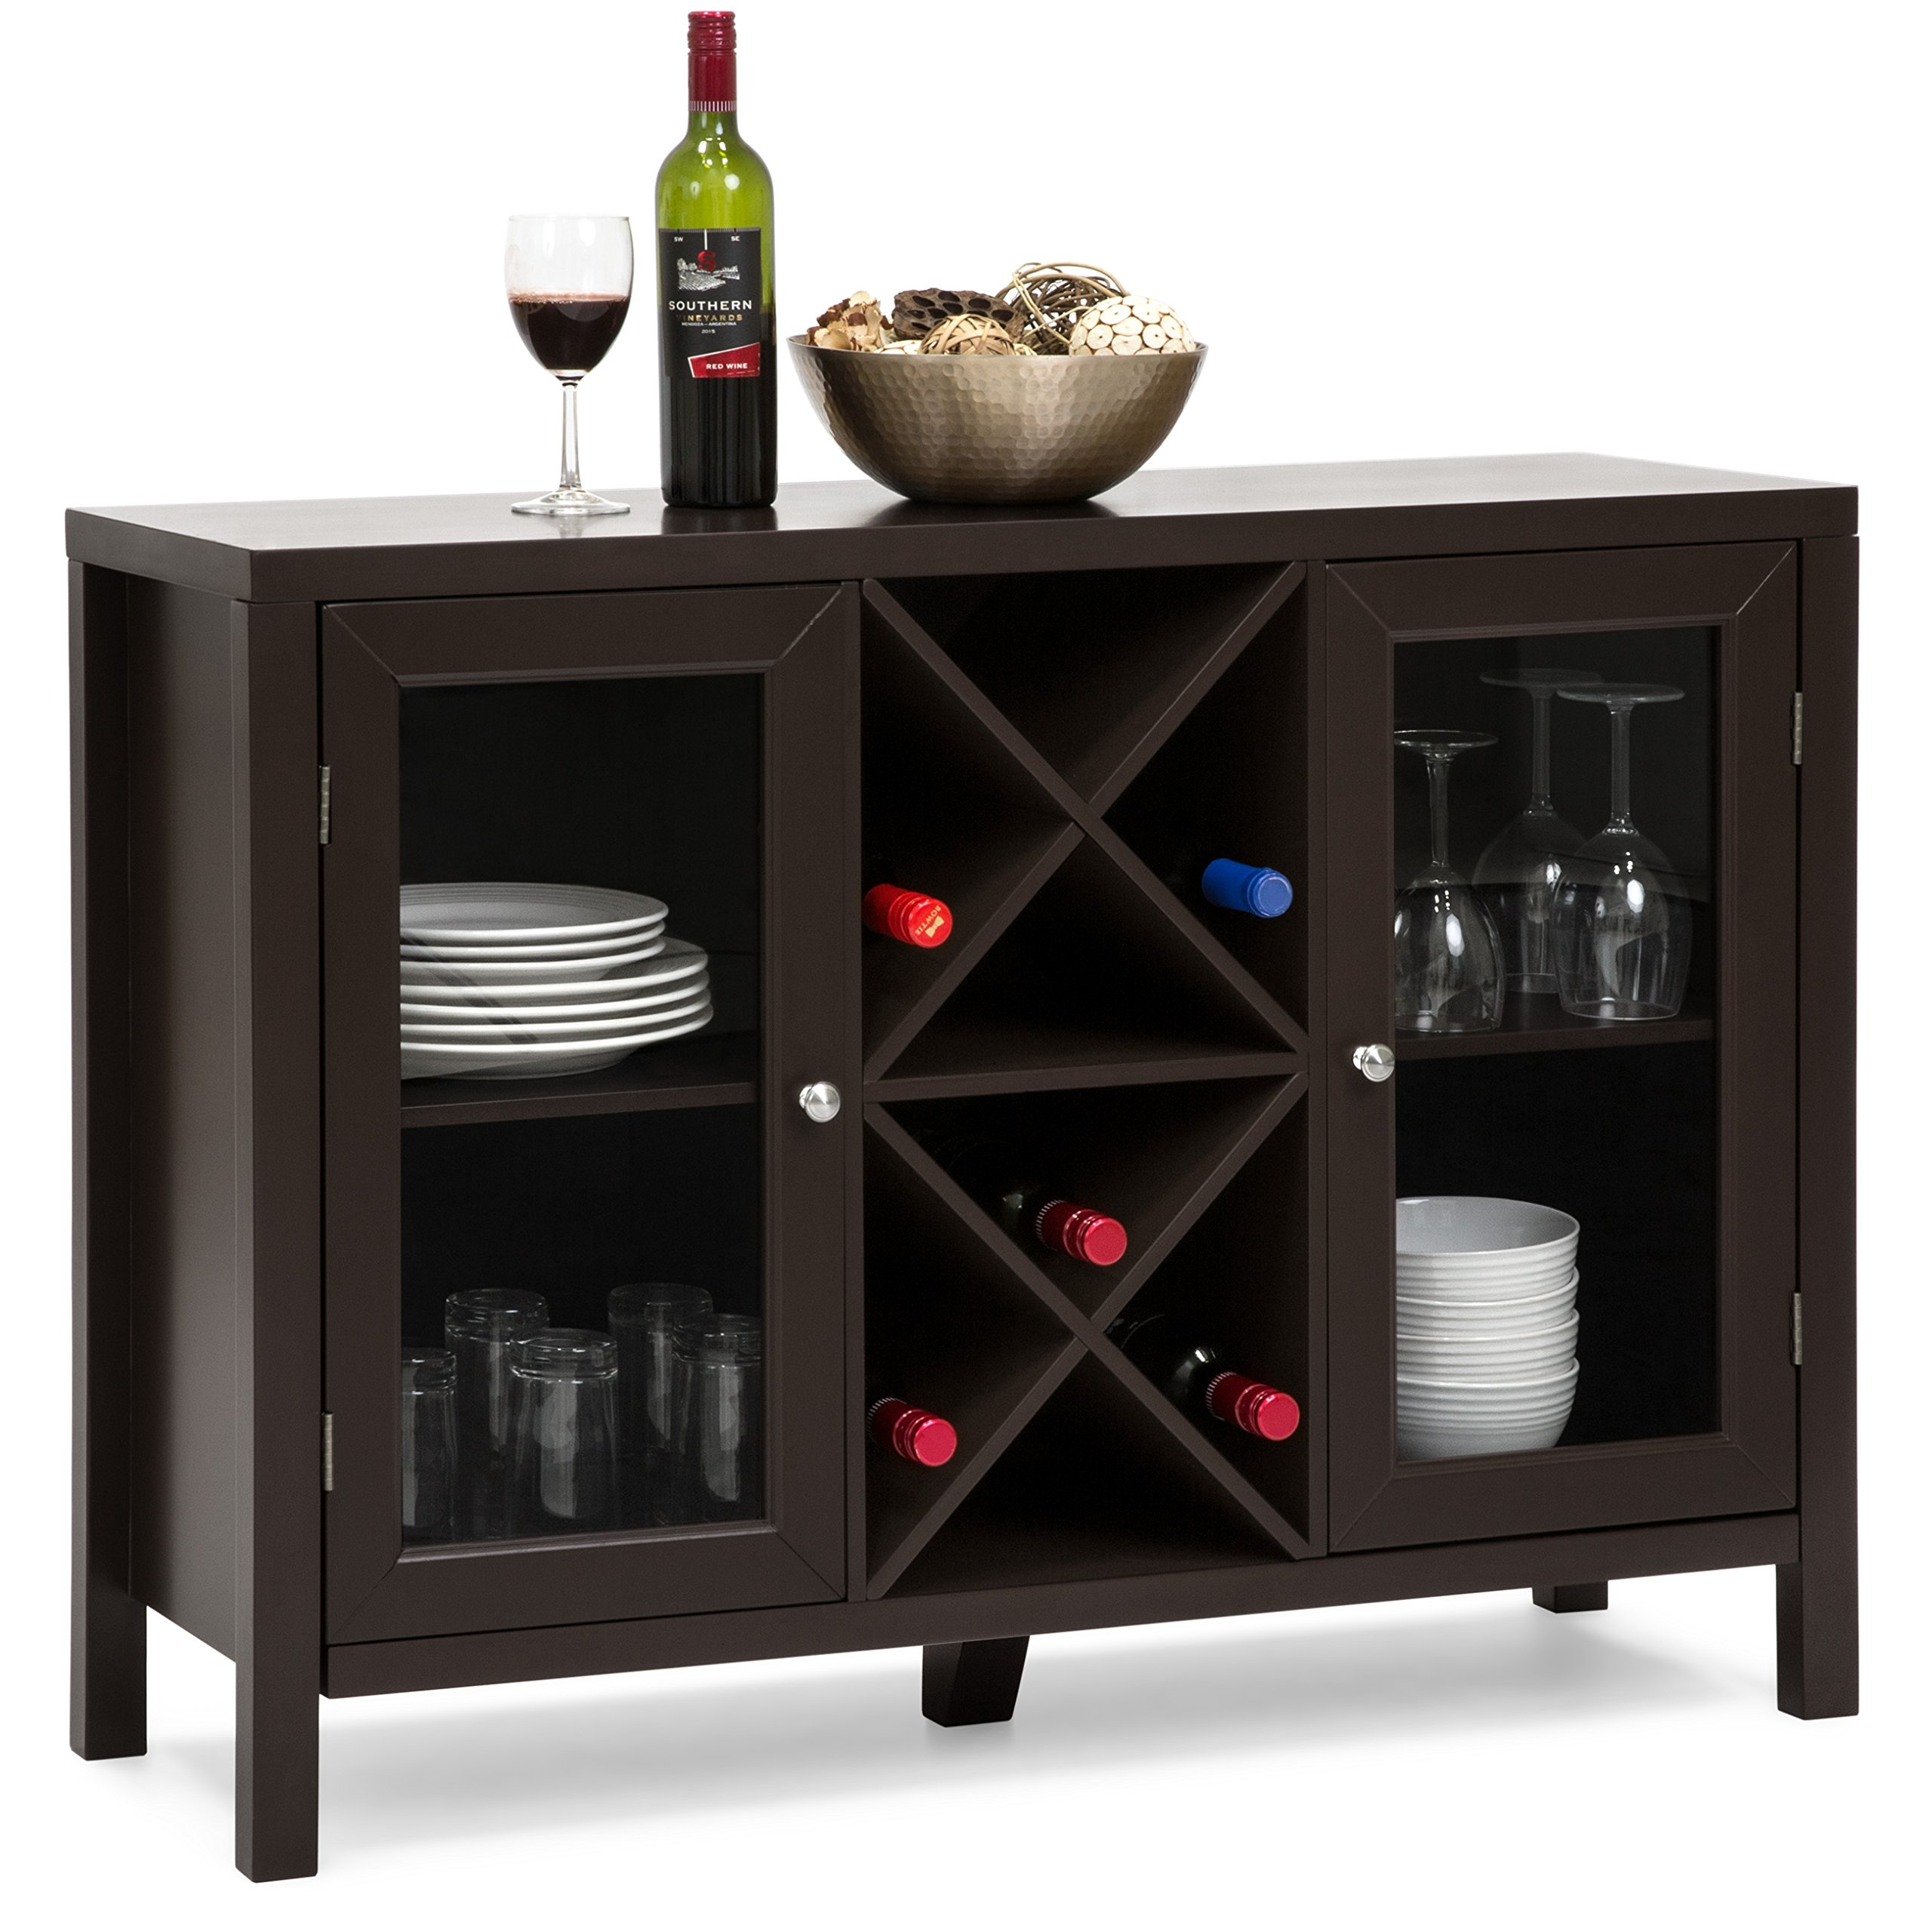 Best Choice Products Wooden Wine Rack Console Sideboard Table w/ Storage - Espresso by Best Choice Products